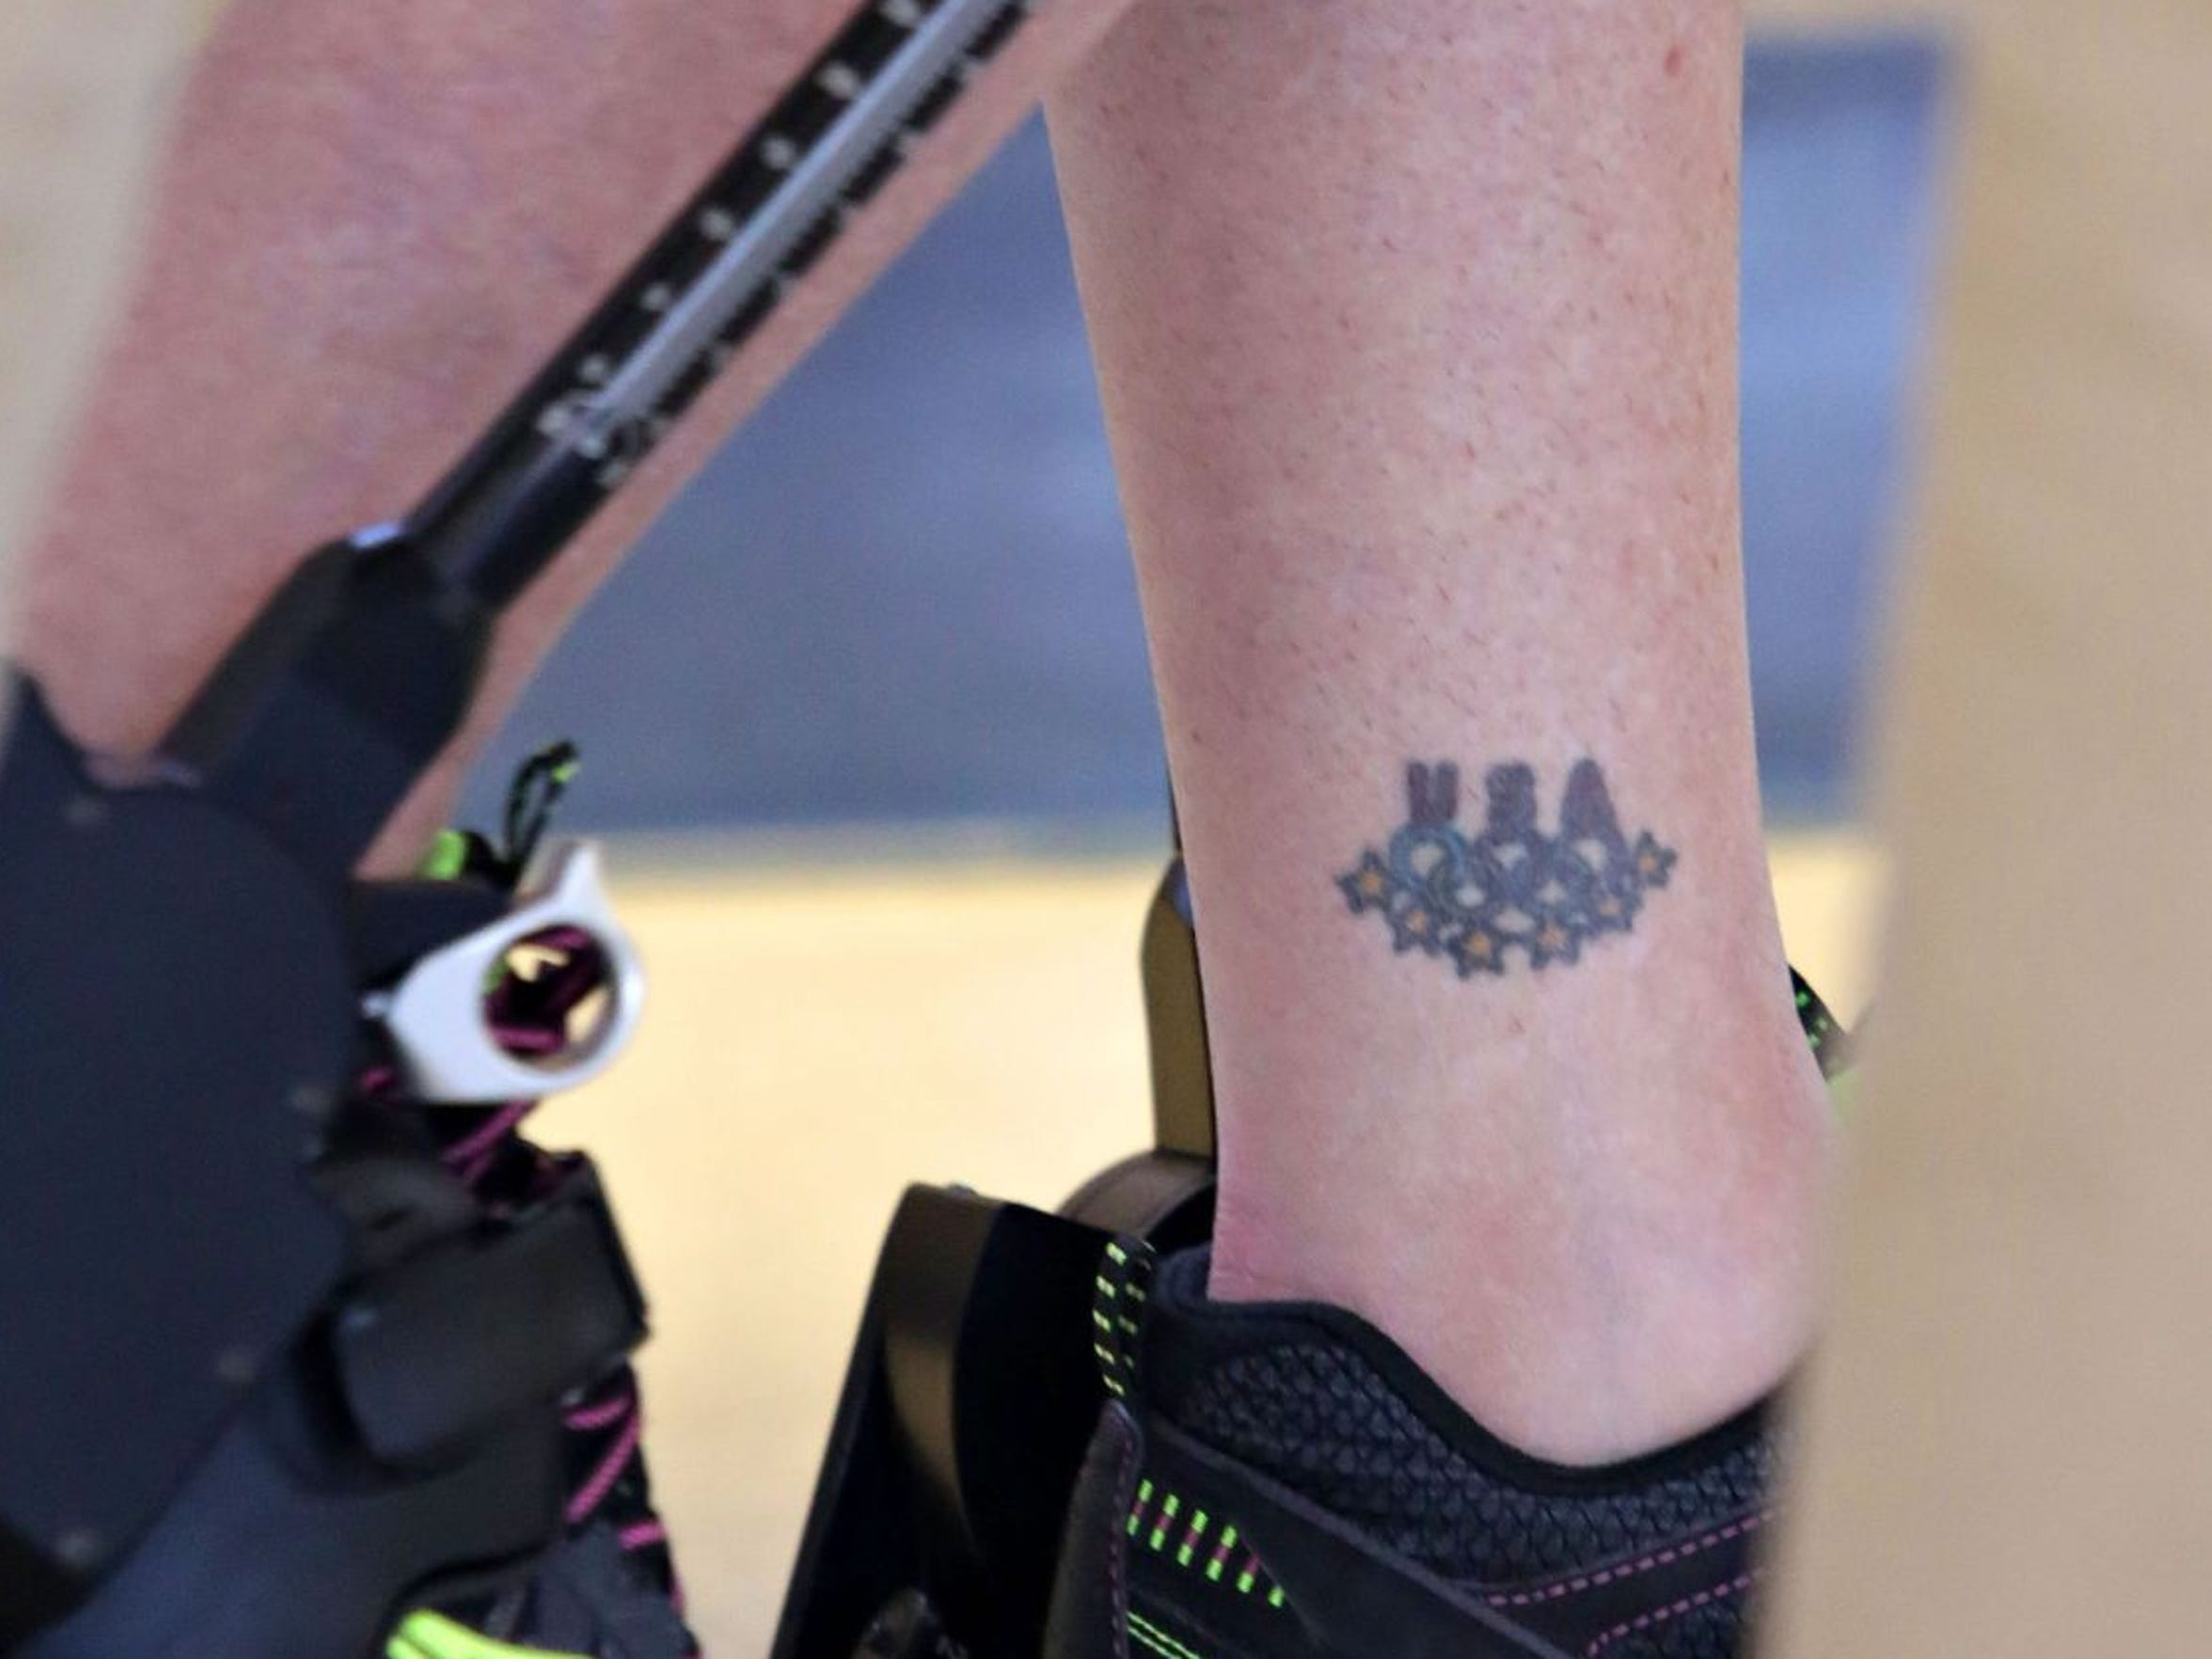 The first: A tattoo on Amy's ankle.